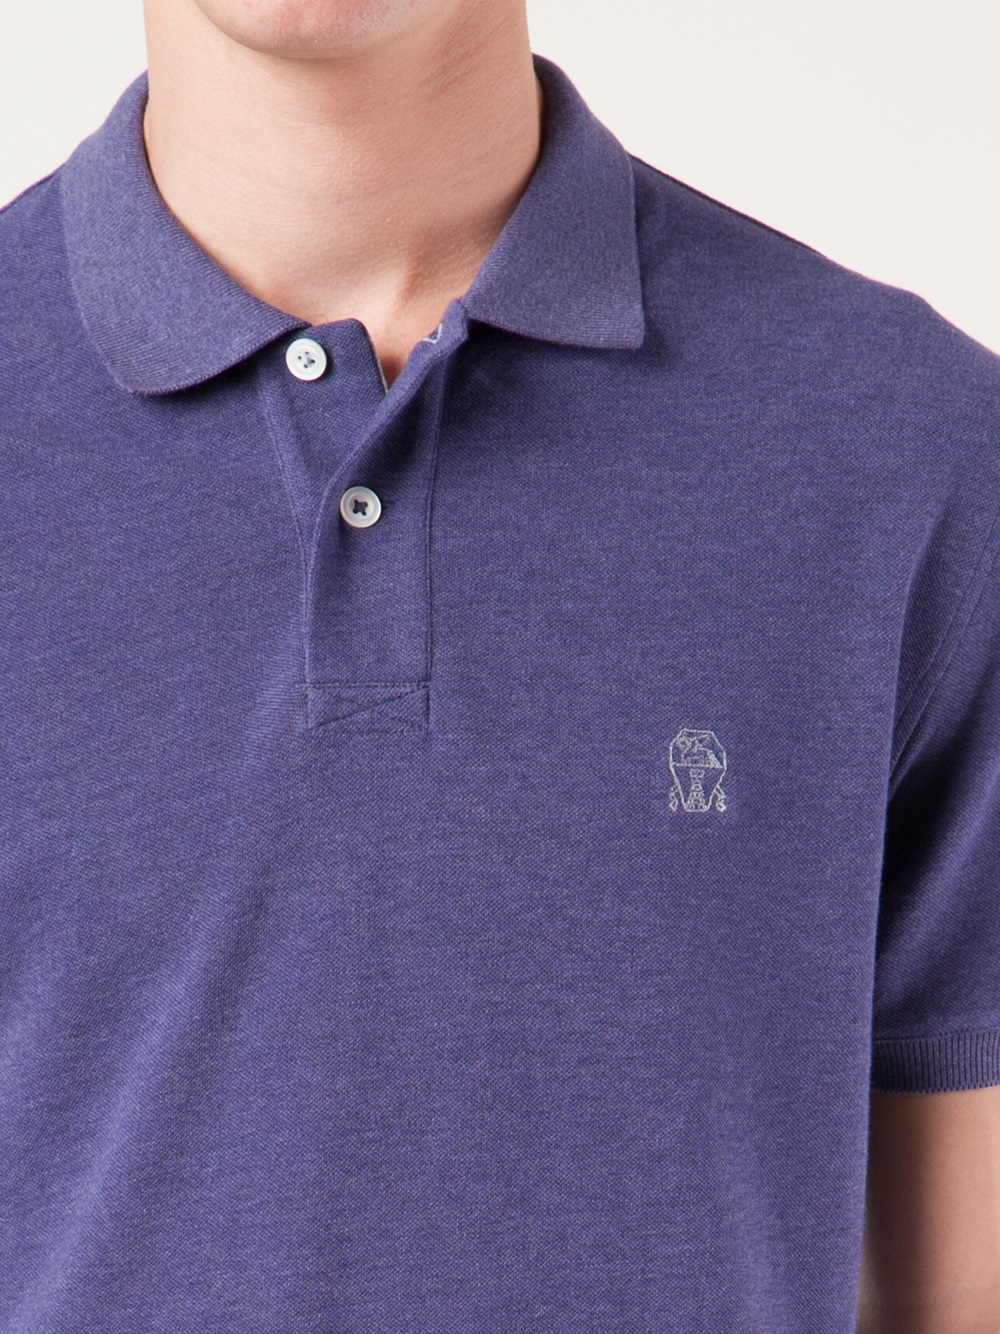 Brunello cucinelli brand embroidered polo shirt in blue for Expensive polo shirt brands